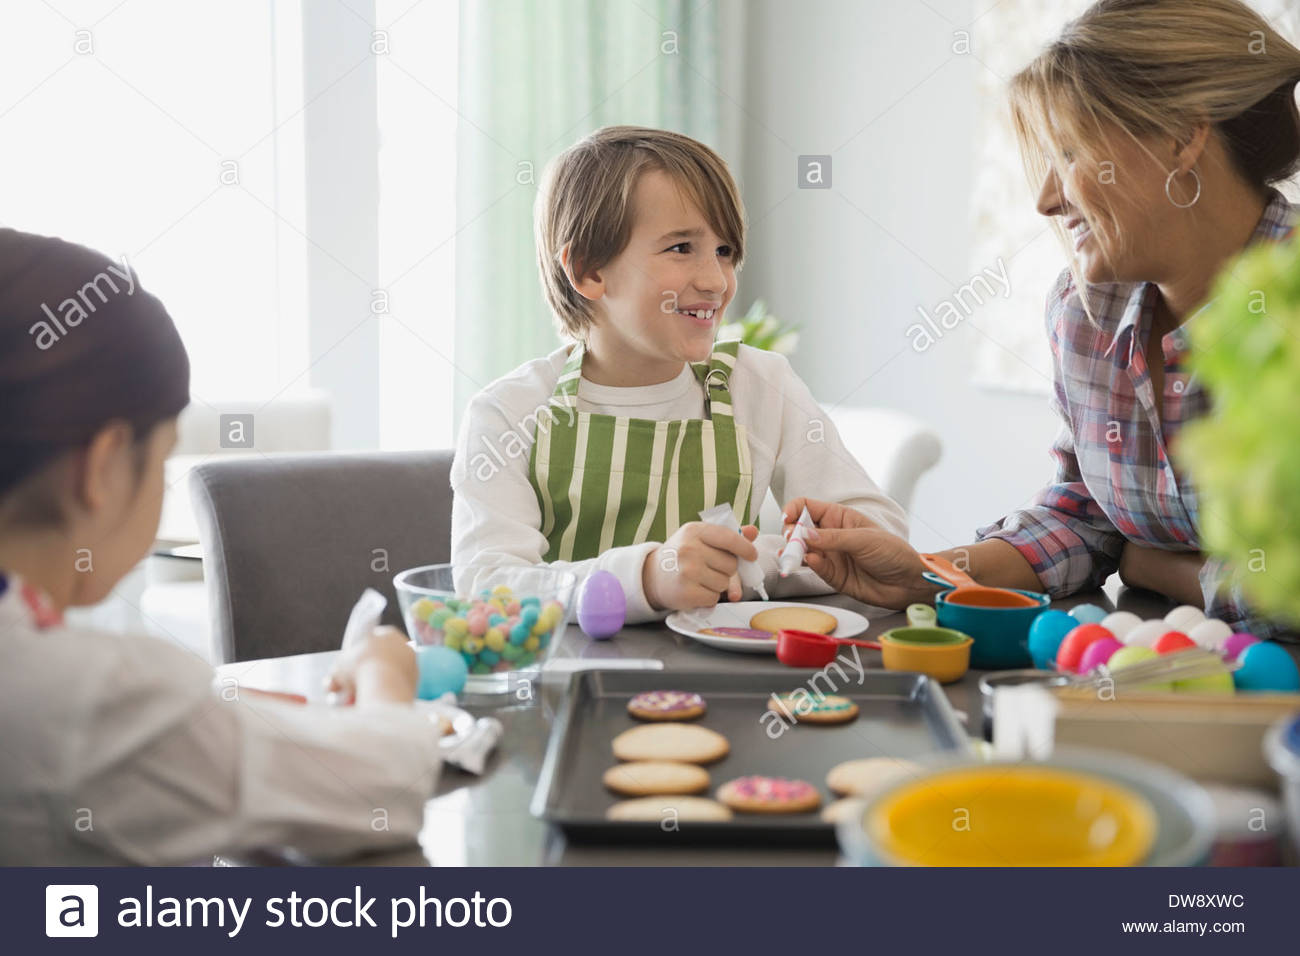 Mother and son decorating cookies at table - Stock Image